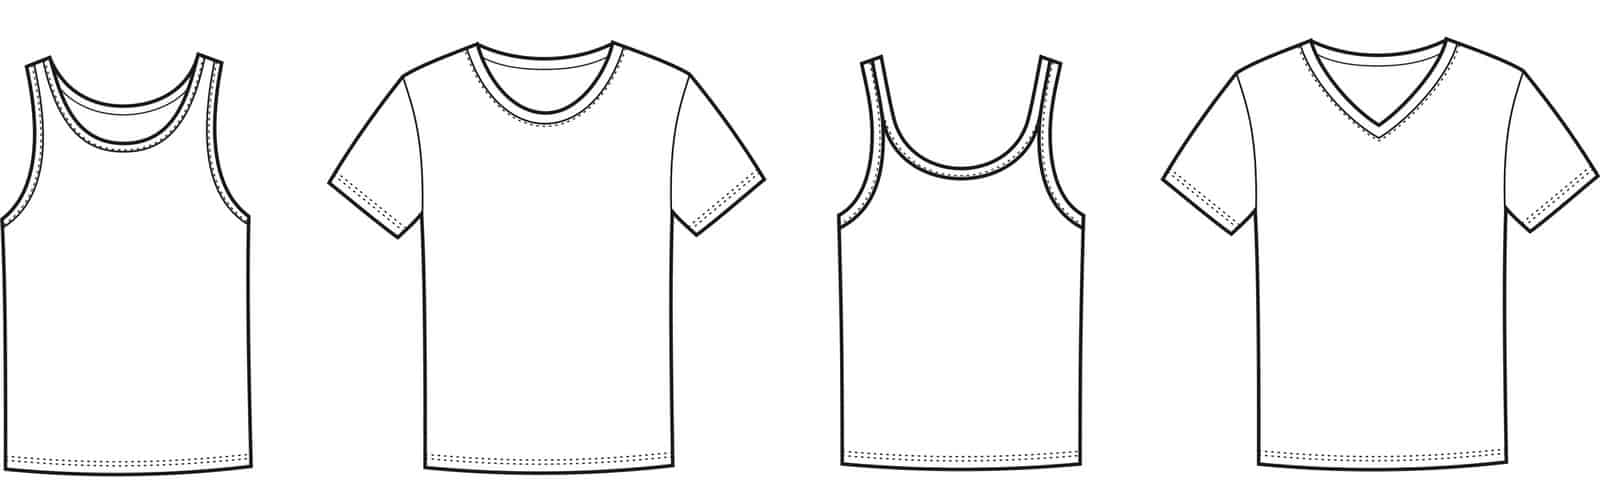 Types of Undershirts